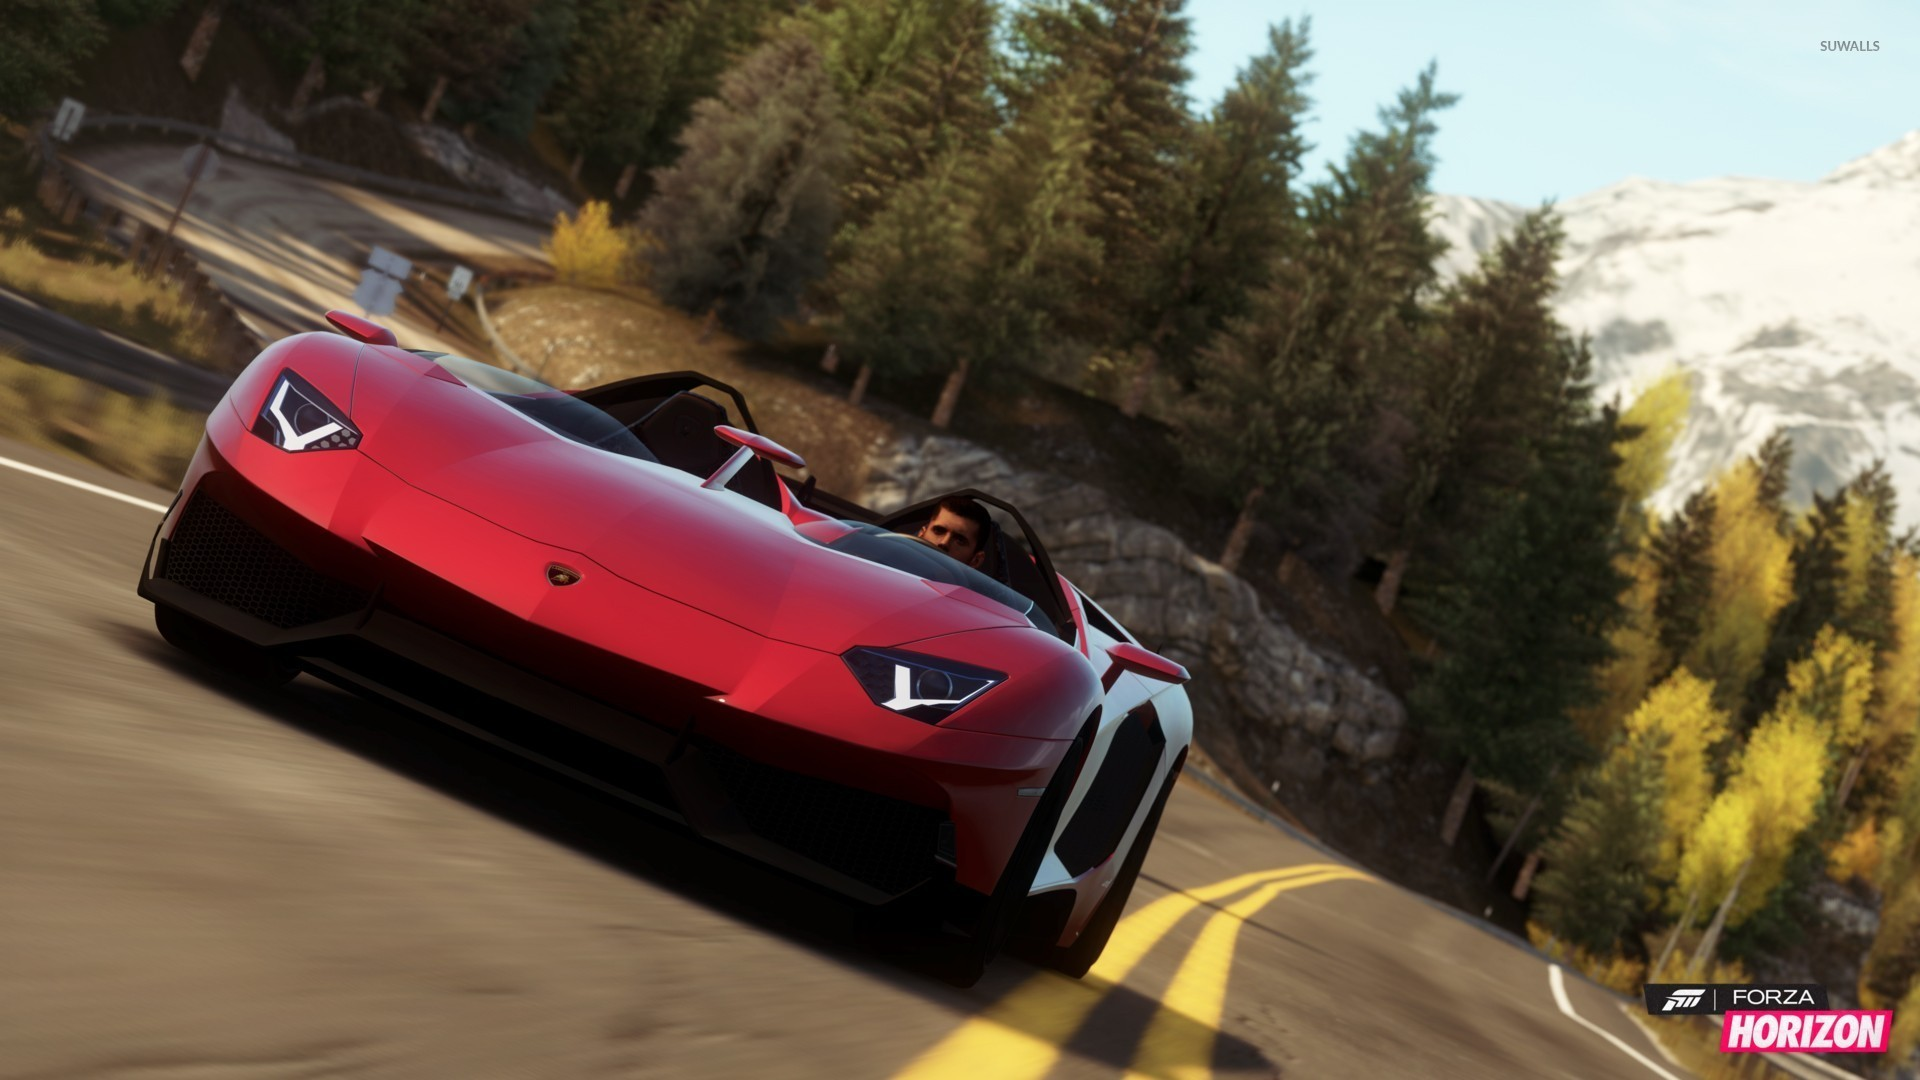 Lamborghini Aventador J Forza Horizon Wallpaper Game Wallpapers